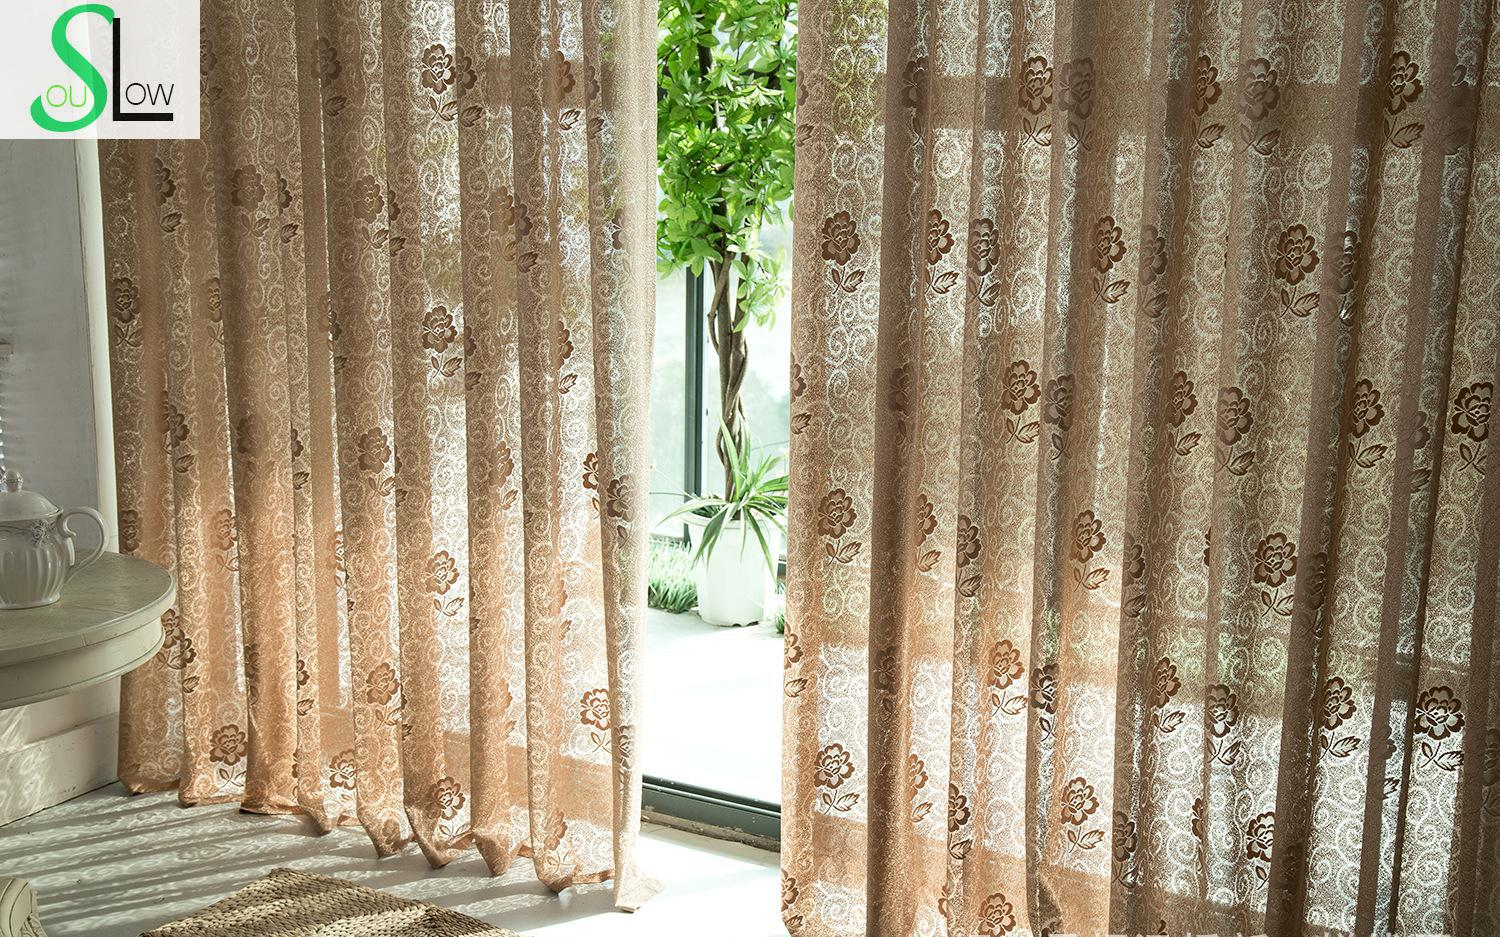 Us 16 25 35 Off Slow Soul Light Brown Cotton Roses Curtains Modern Pleated Europe Floral Tulle For Living Room Kitchen Bedroom Sheer Blinds In